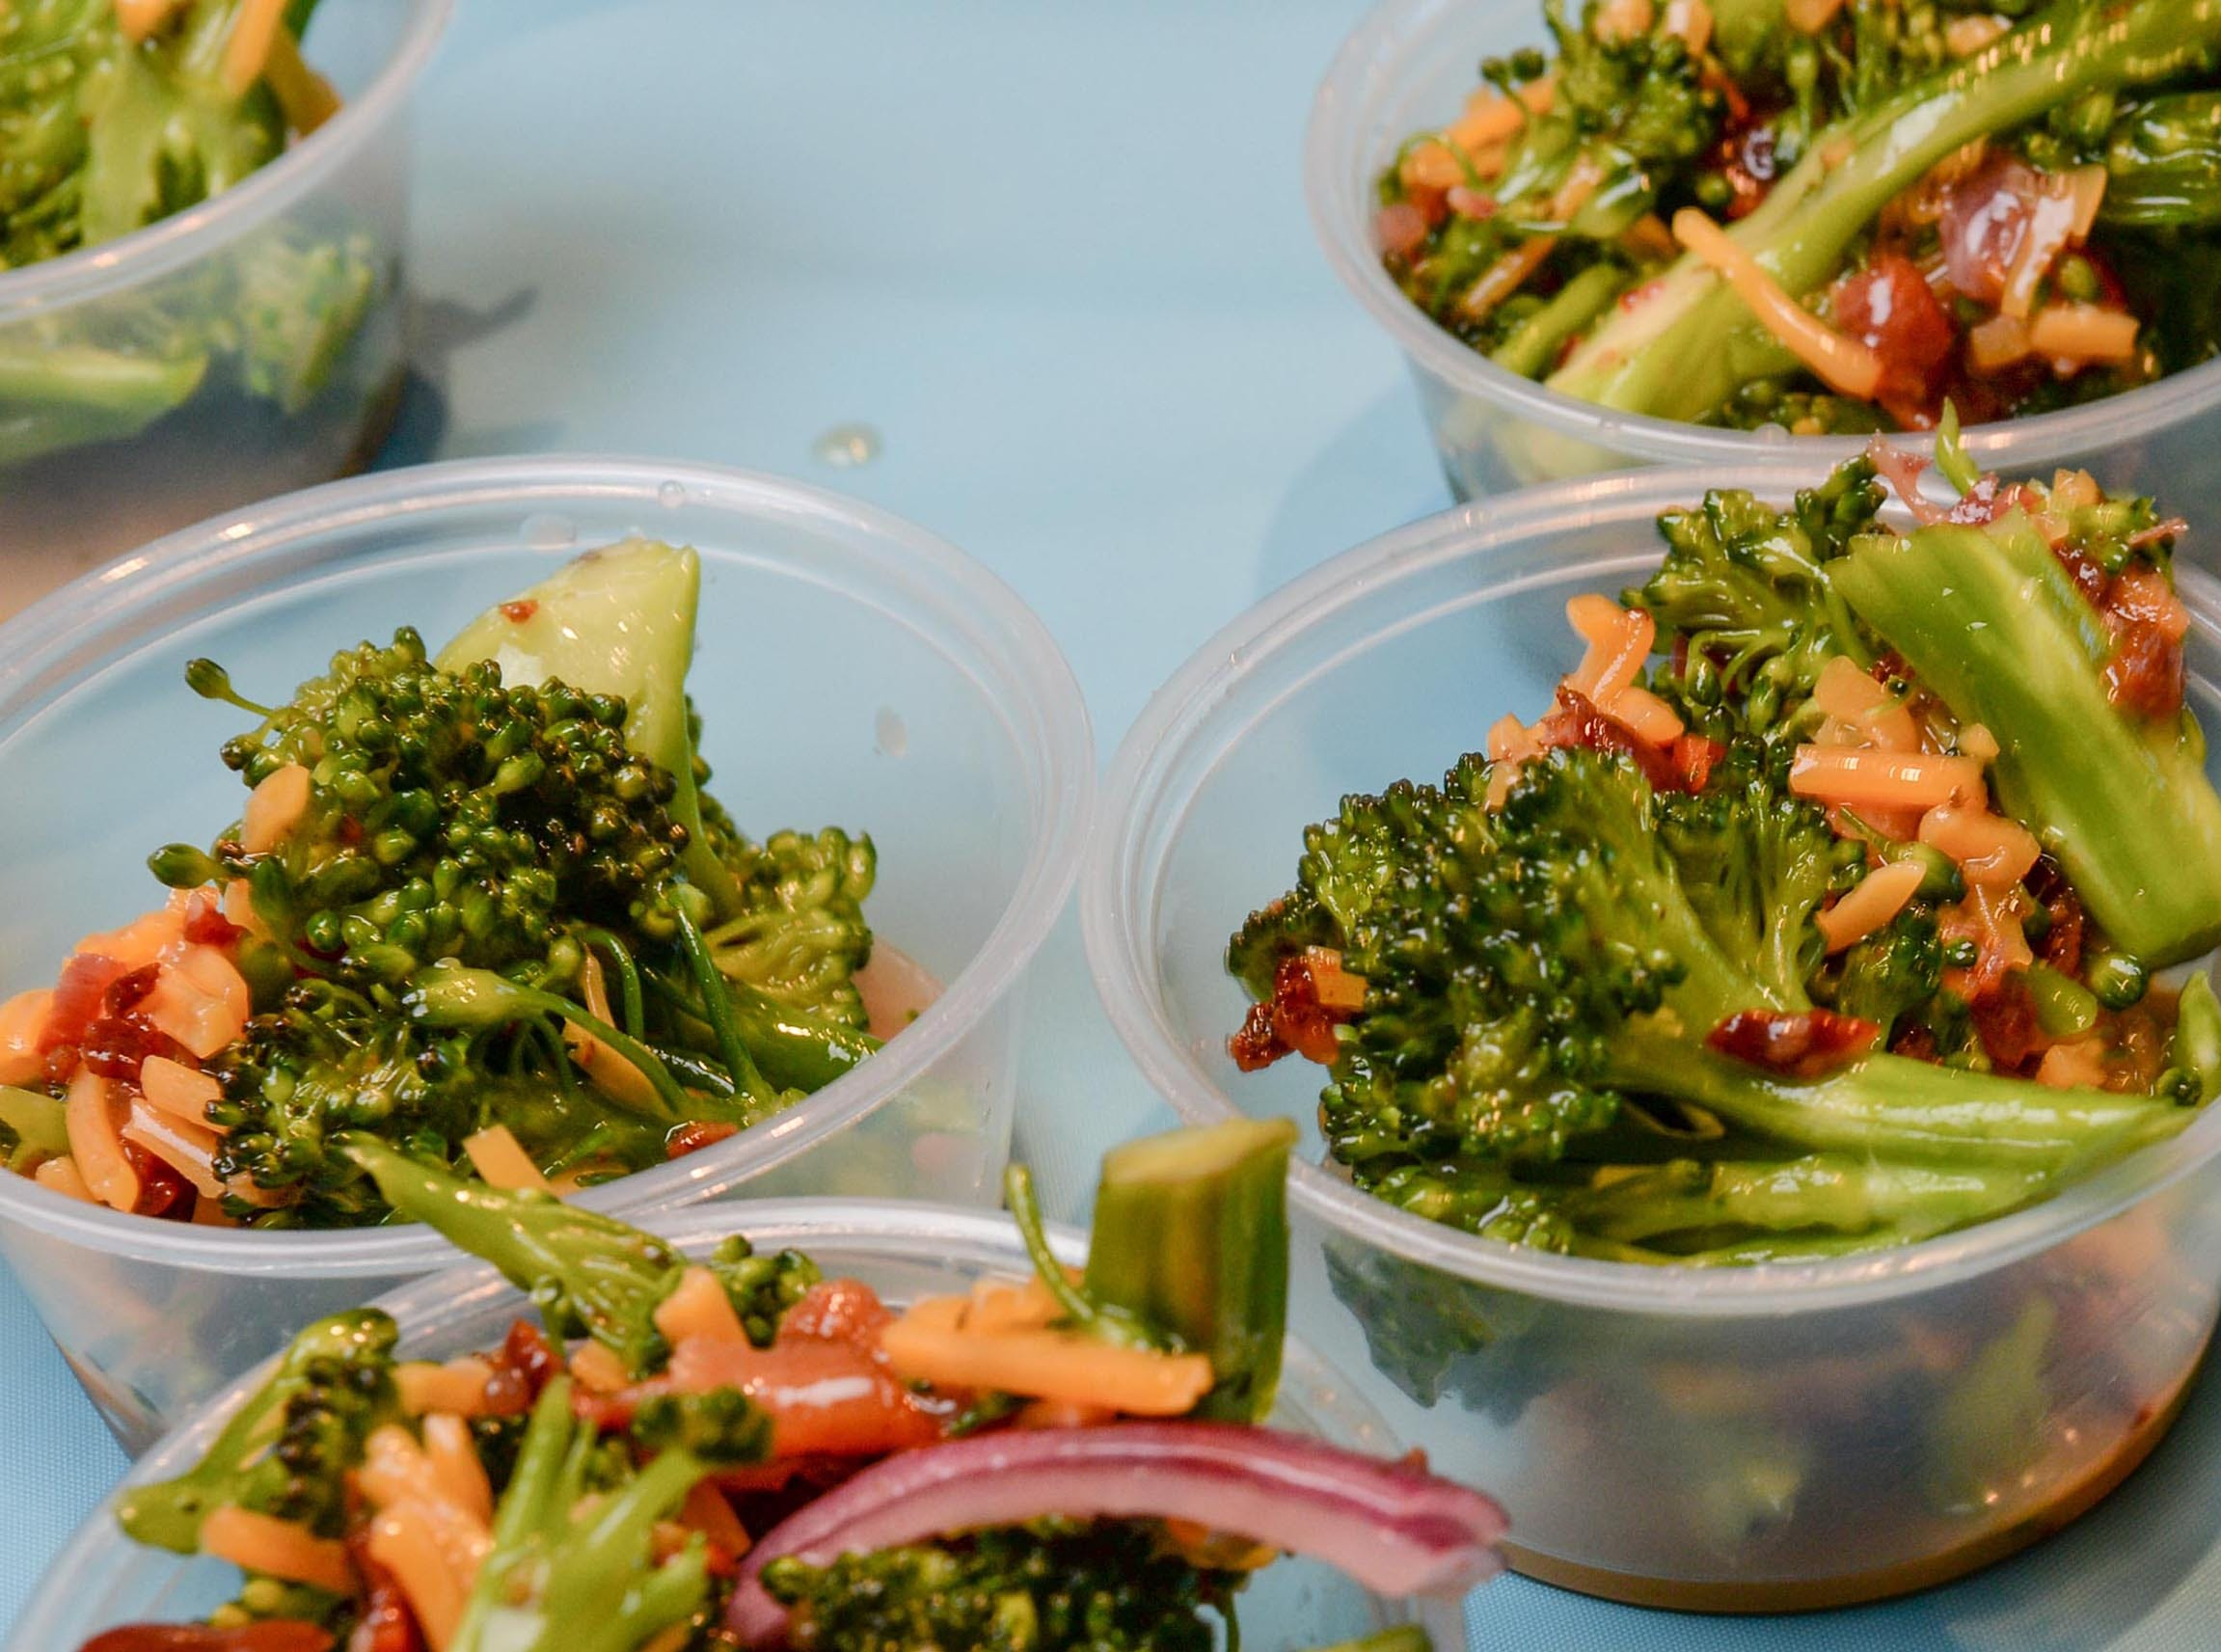 Broccoli salad from Mama Penn's at the Anderson Area YMCA Ralph Hayes Toyota Taste of Anderson at The Bleckley Station Tuesday. Proceeds from the Aloha theme party benefit programs and services of the Anderson Area YMCA.